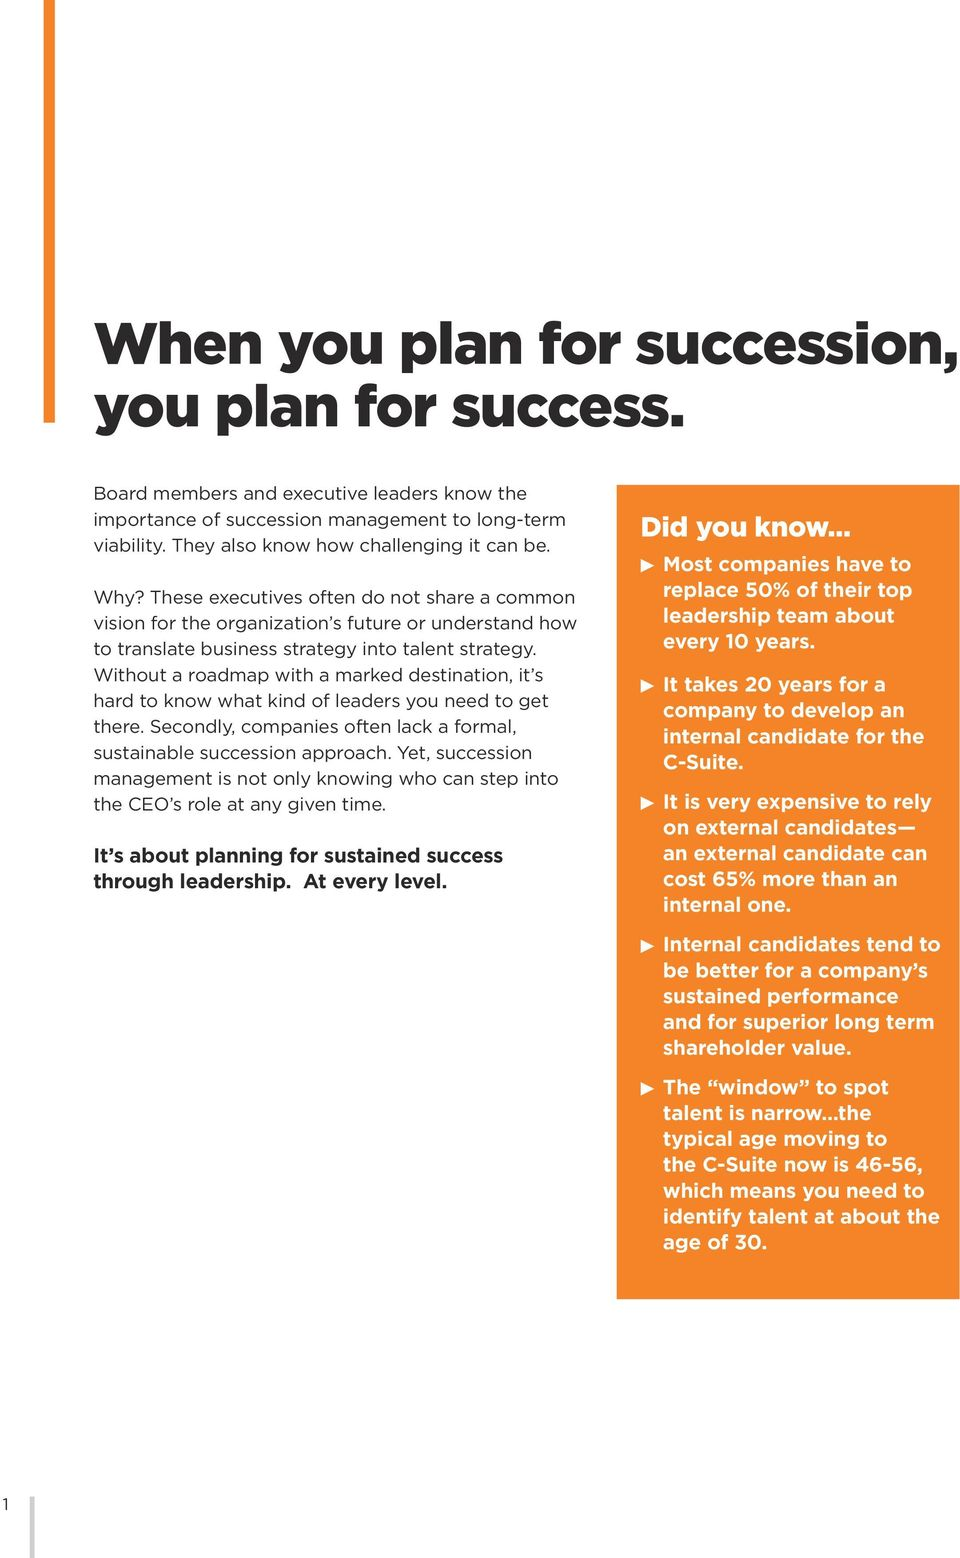 Without a roadmap with a marked destination, it s hard to know what kind of leaders you need to get there. Secondly, companies often lack a formal, sustainable succession approach.